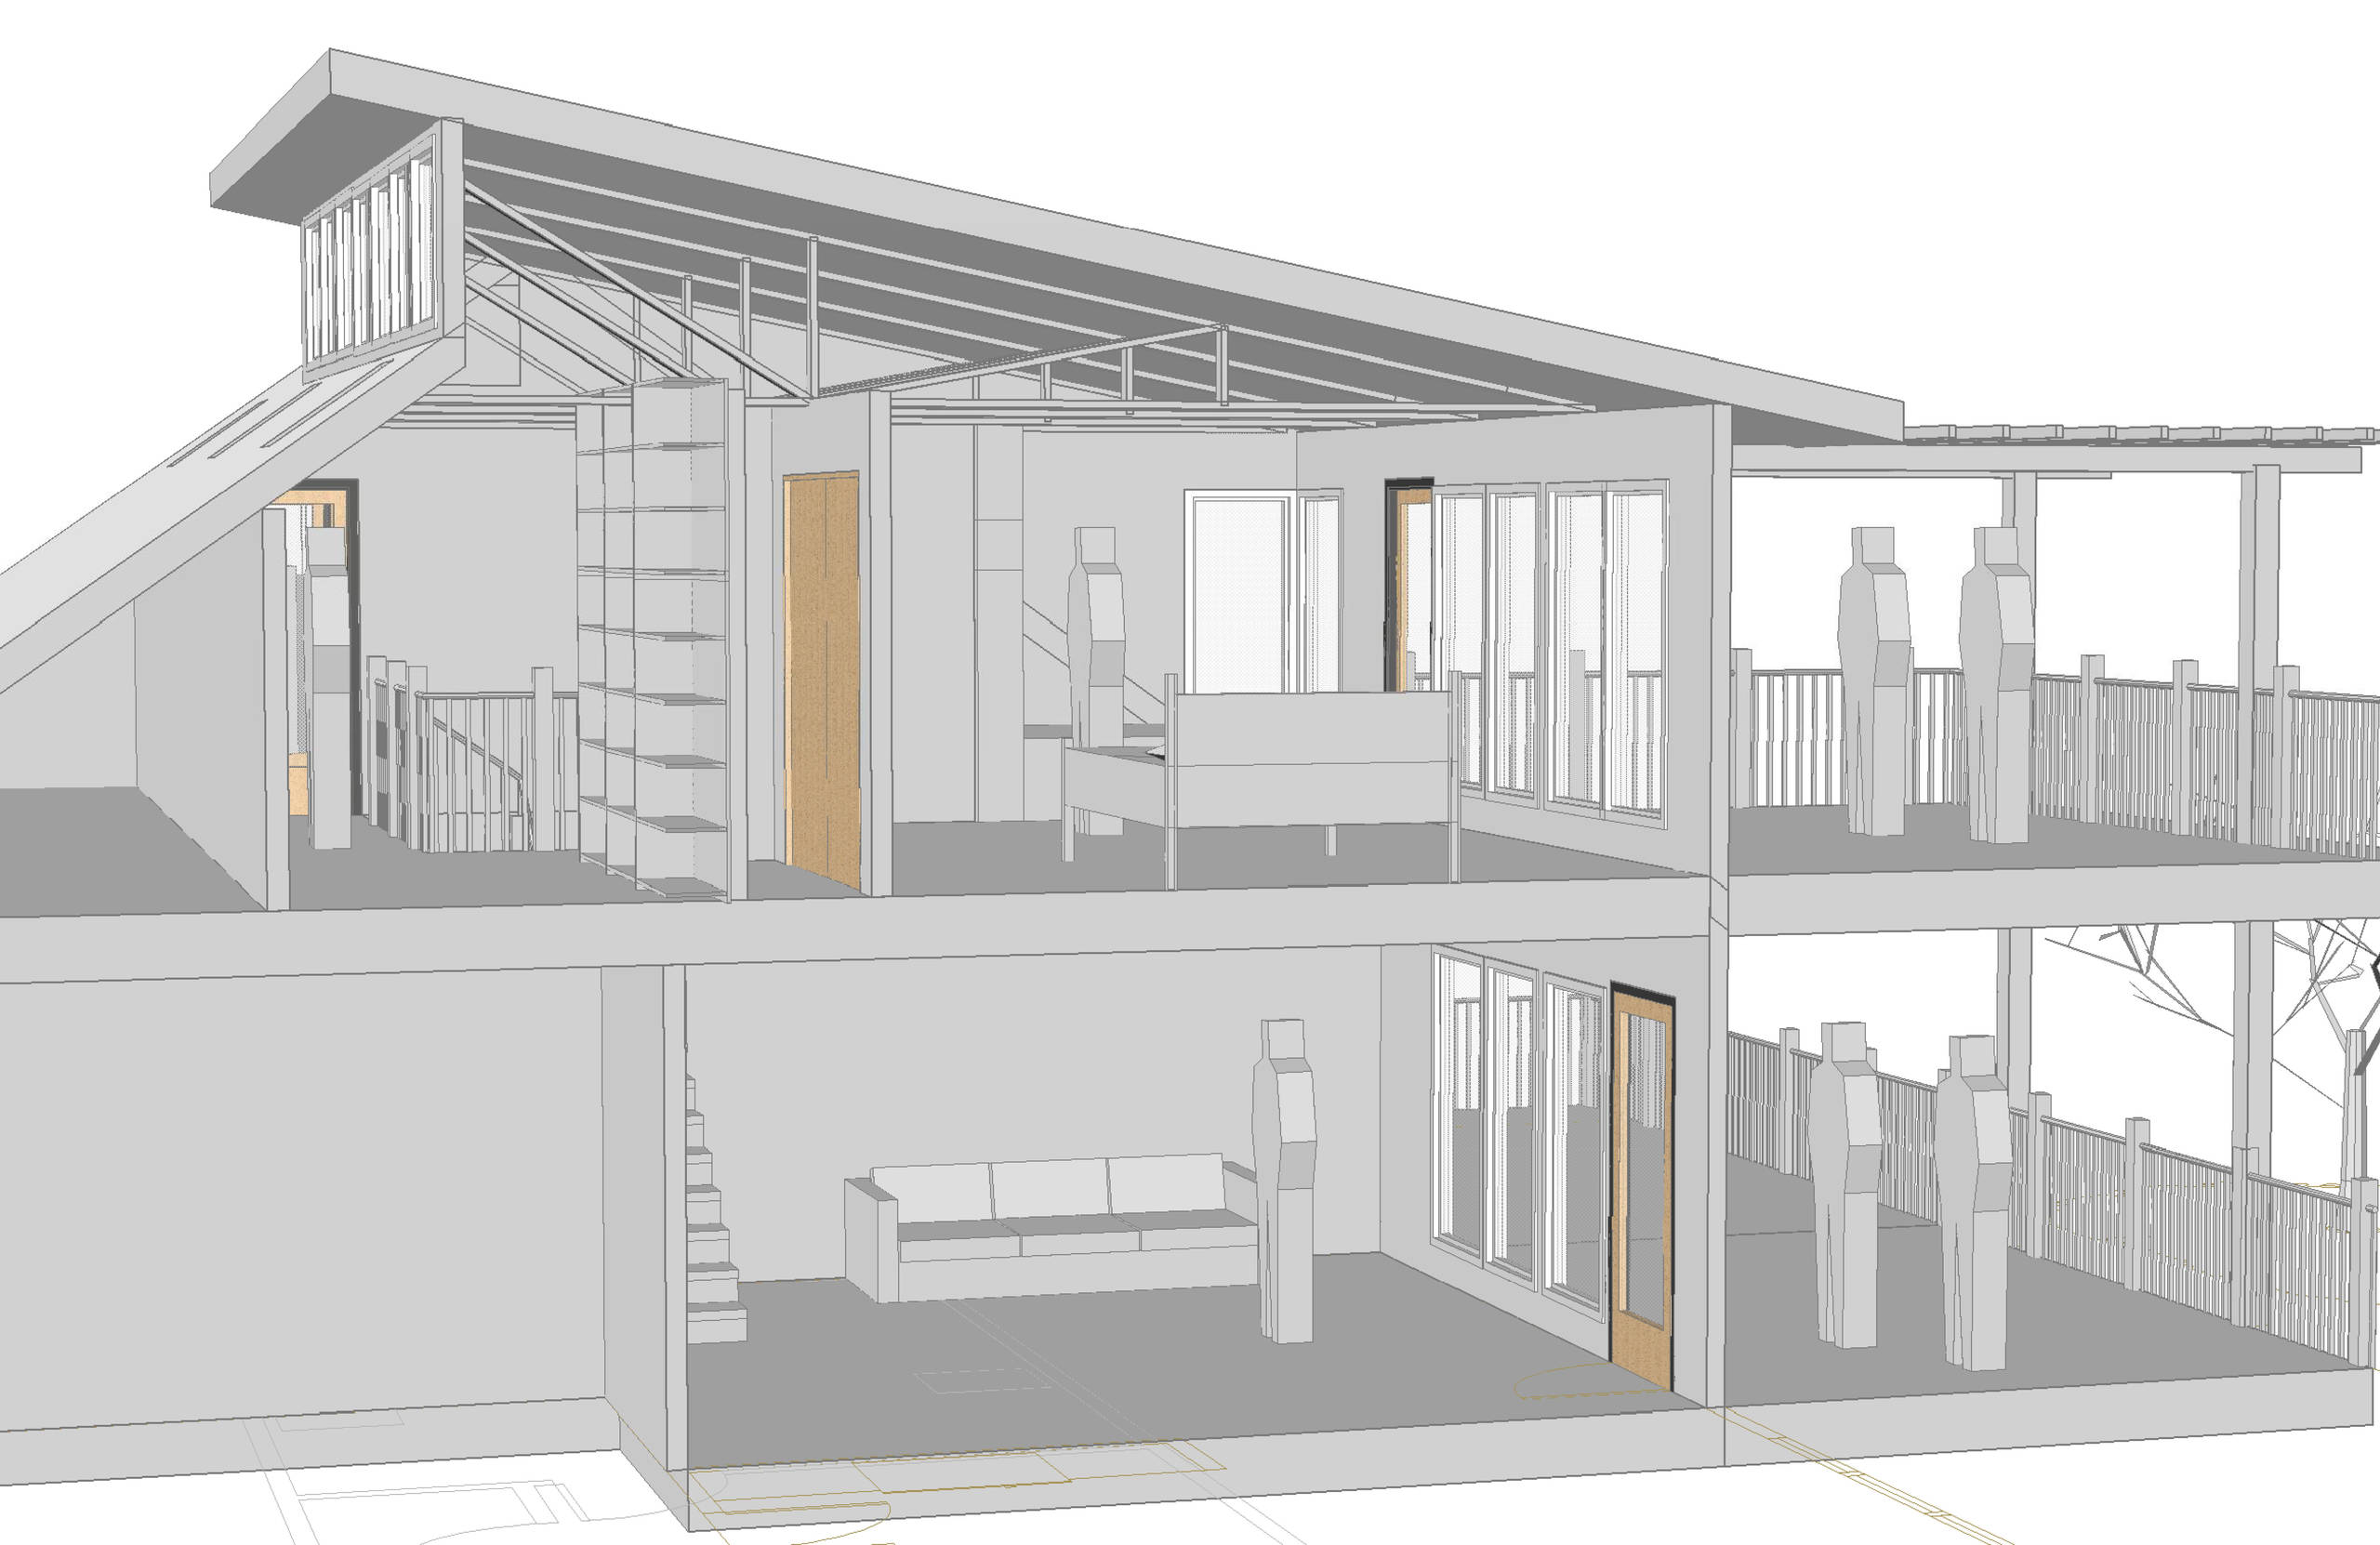 Section View showing lower living/deck and upper master bedroom and deck